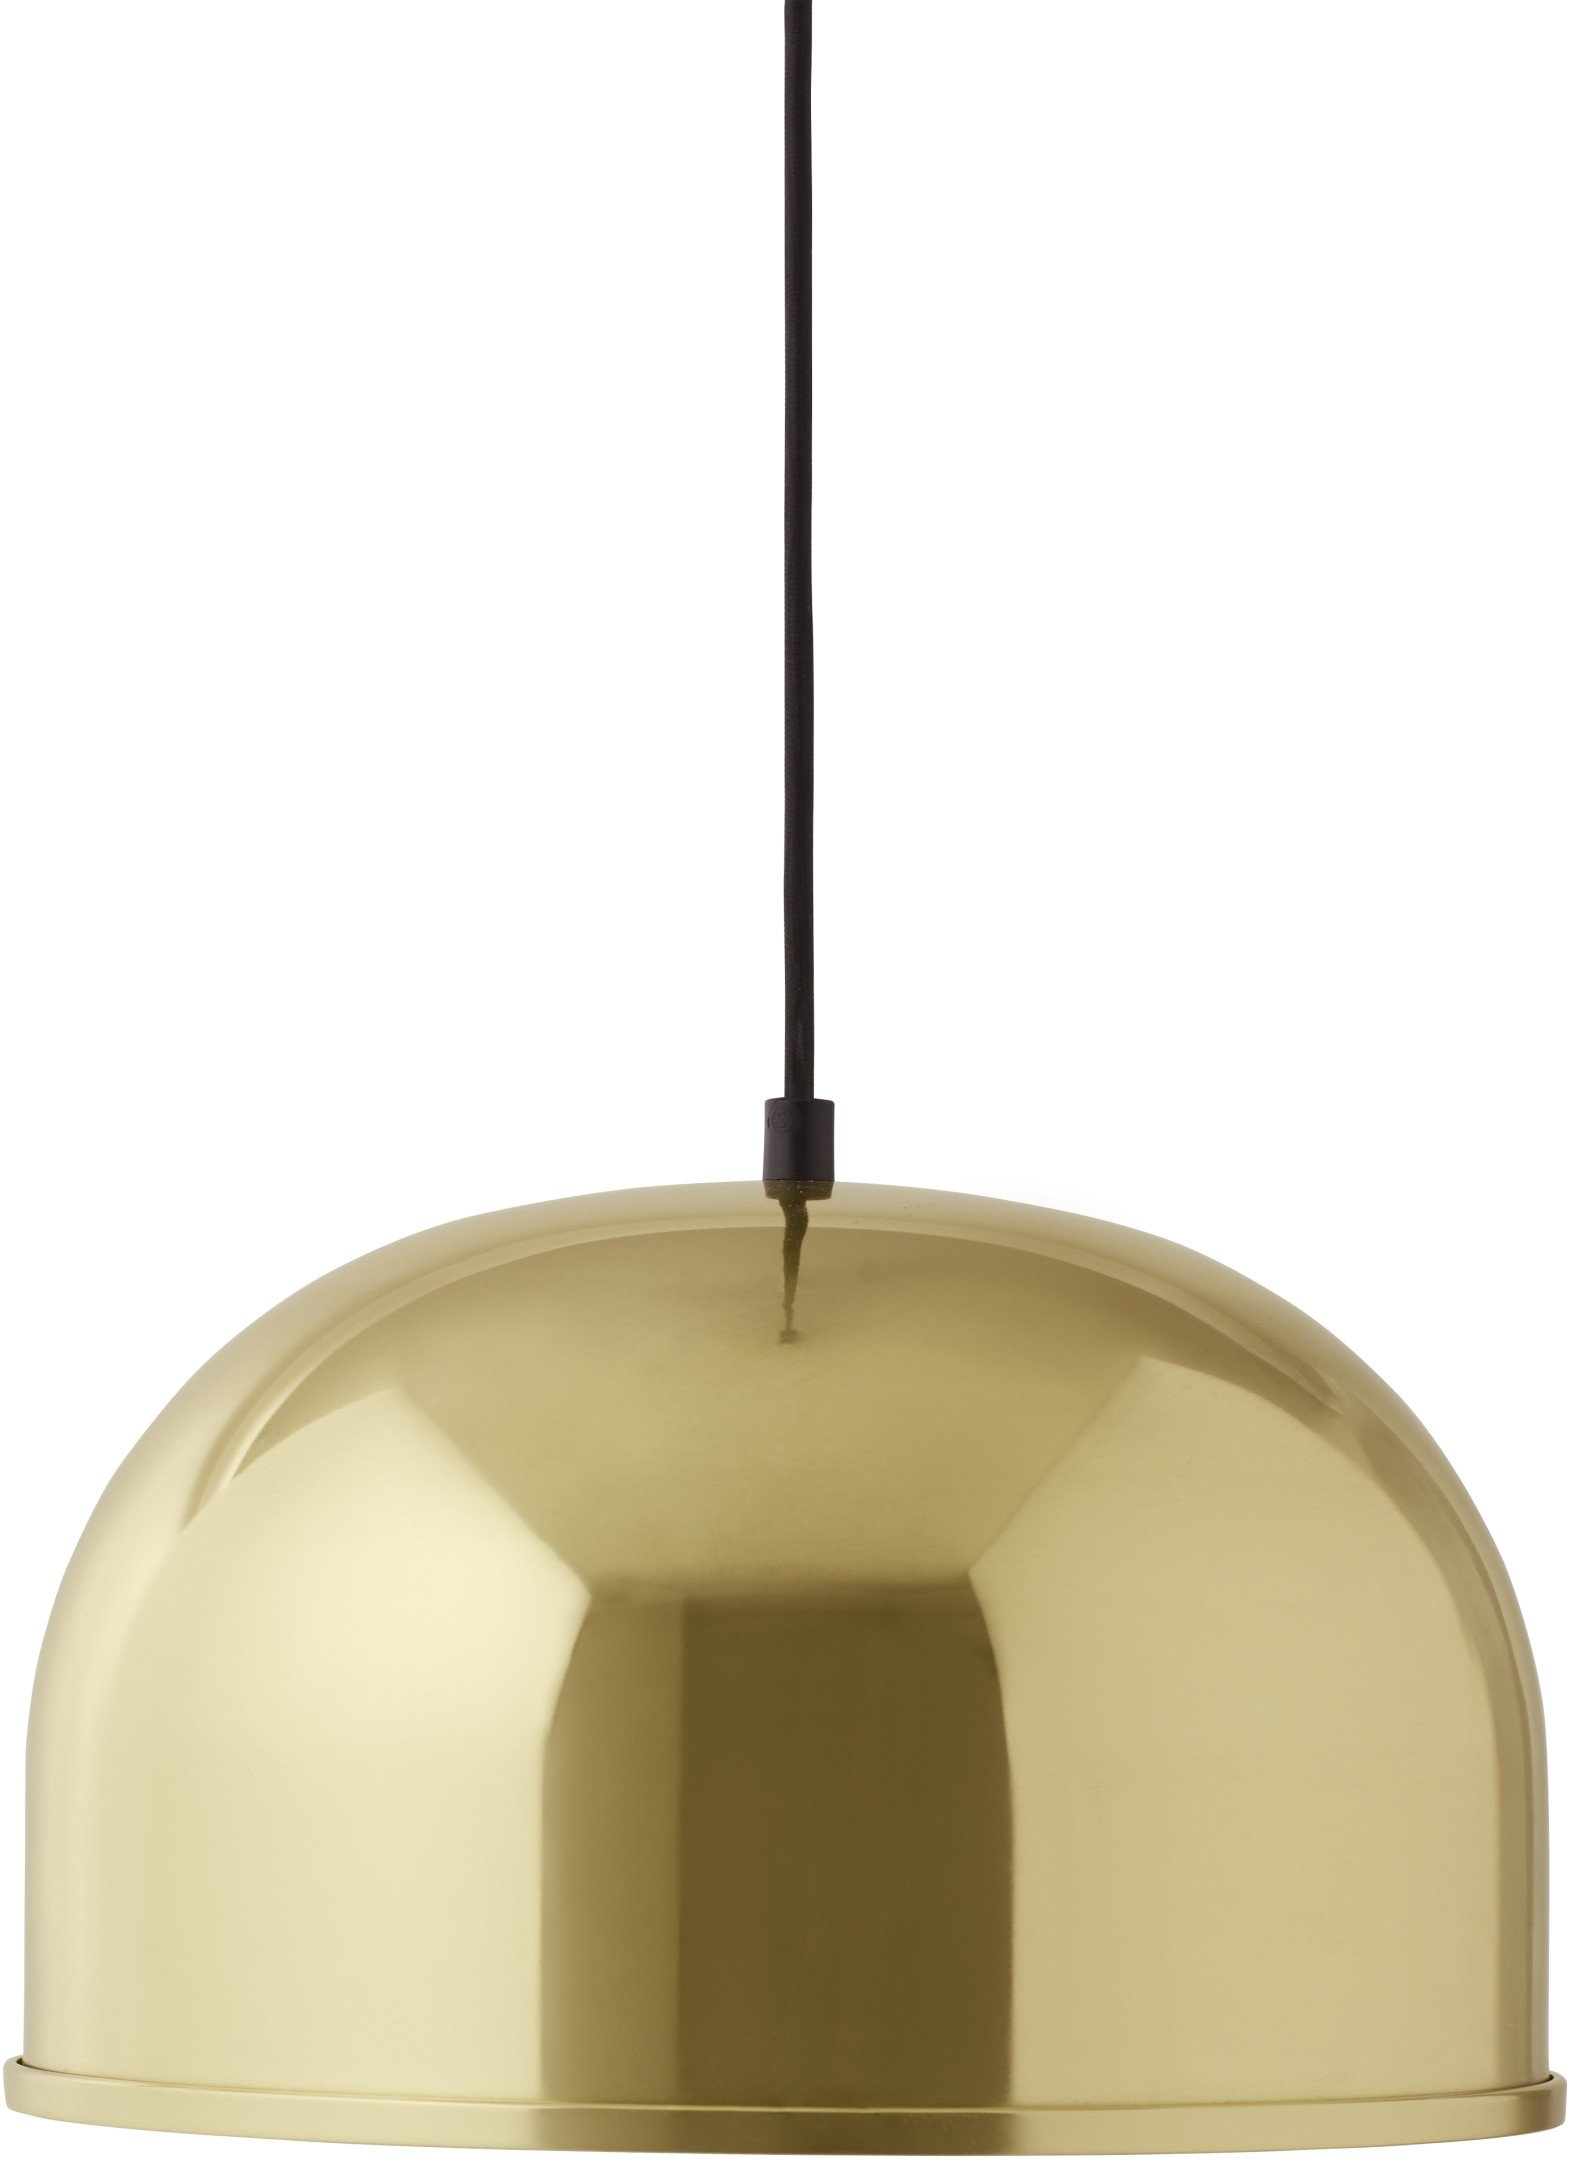 Lampa GM Brass Ø 30cm, proj. Grethe Meyer, Menu